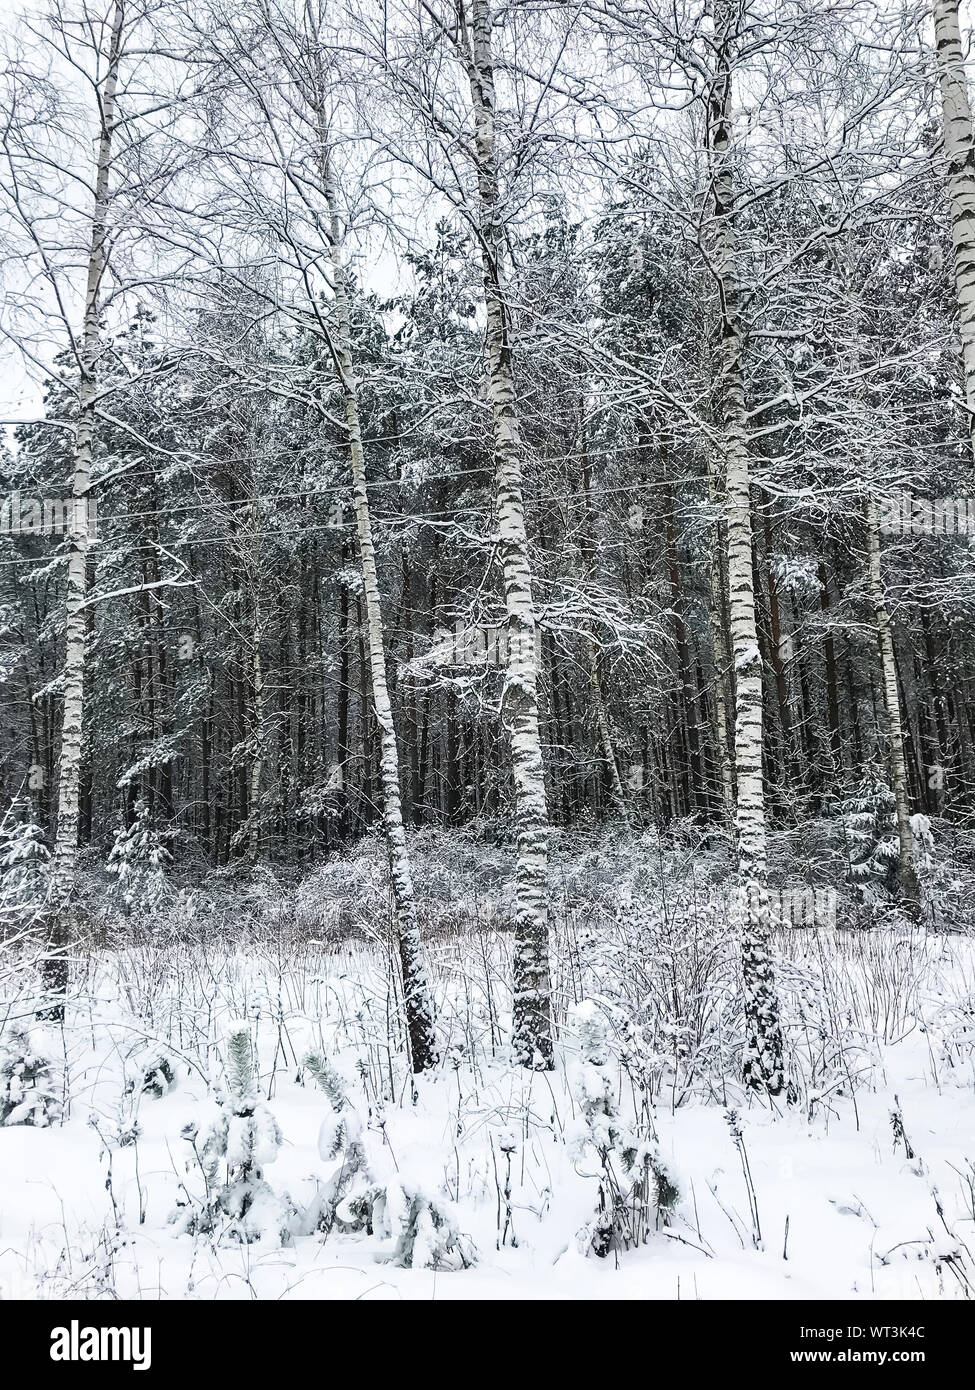 Snow on the branches of trees and shrubs in winter. Stock Photo